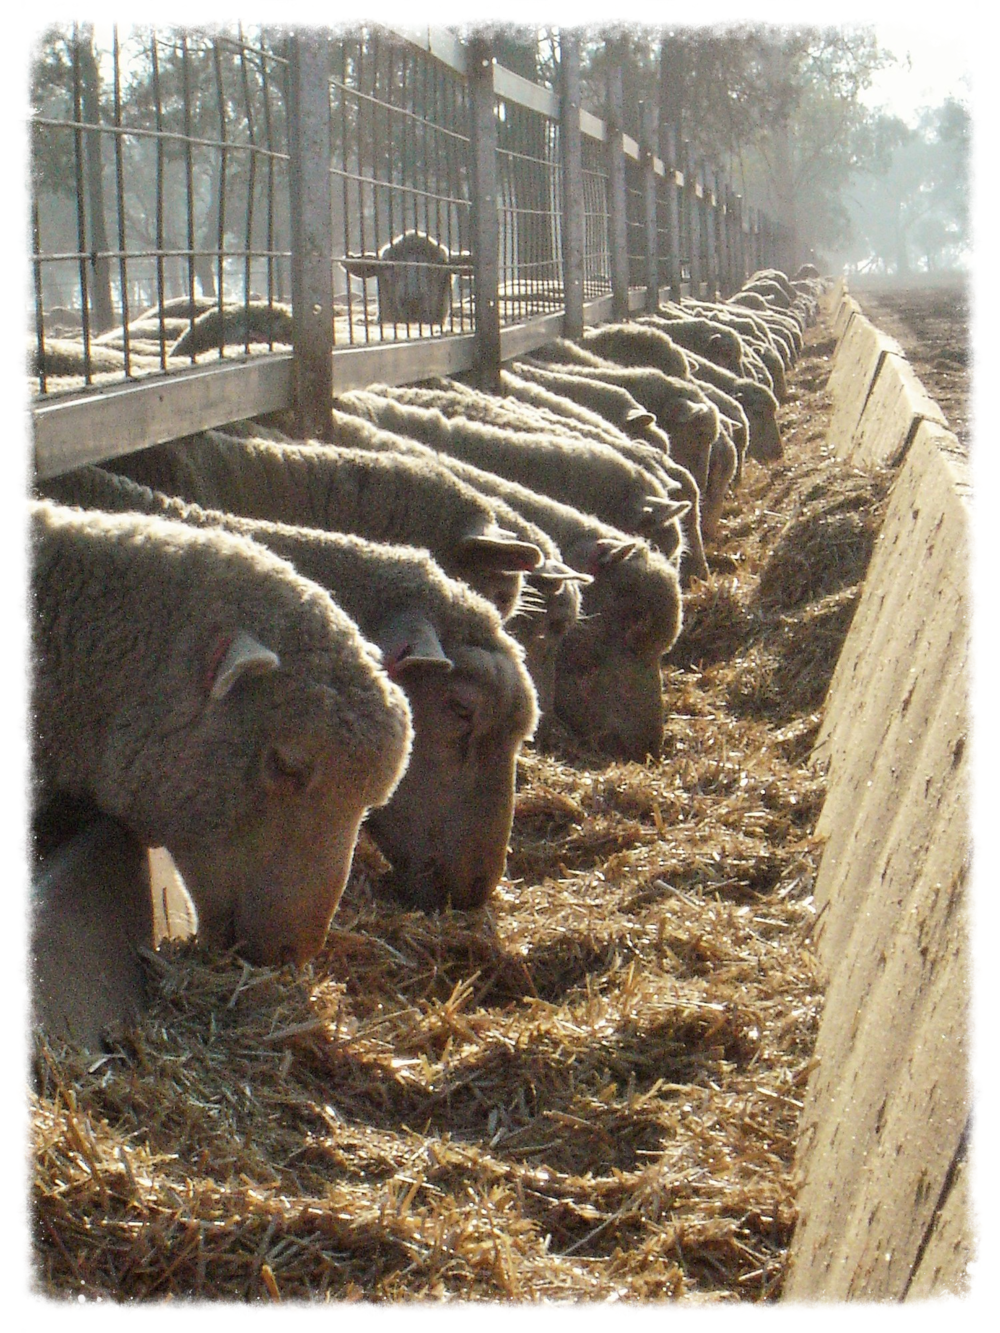 Lamb feedlot